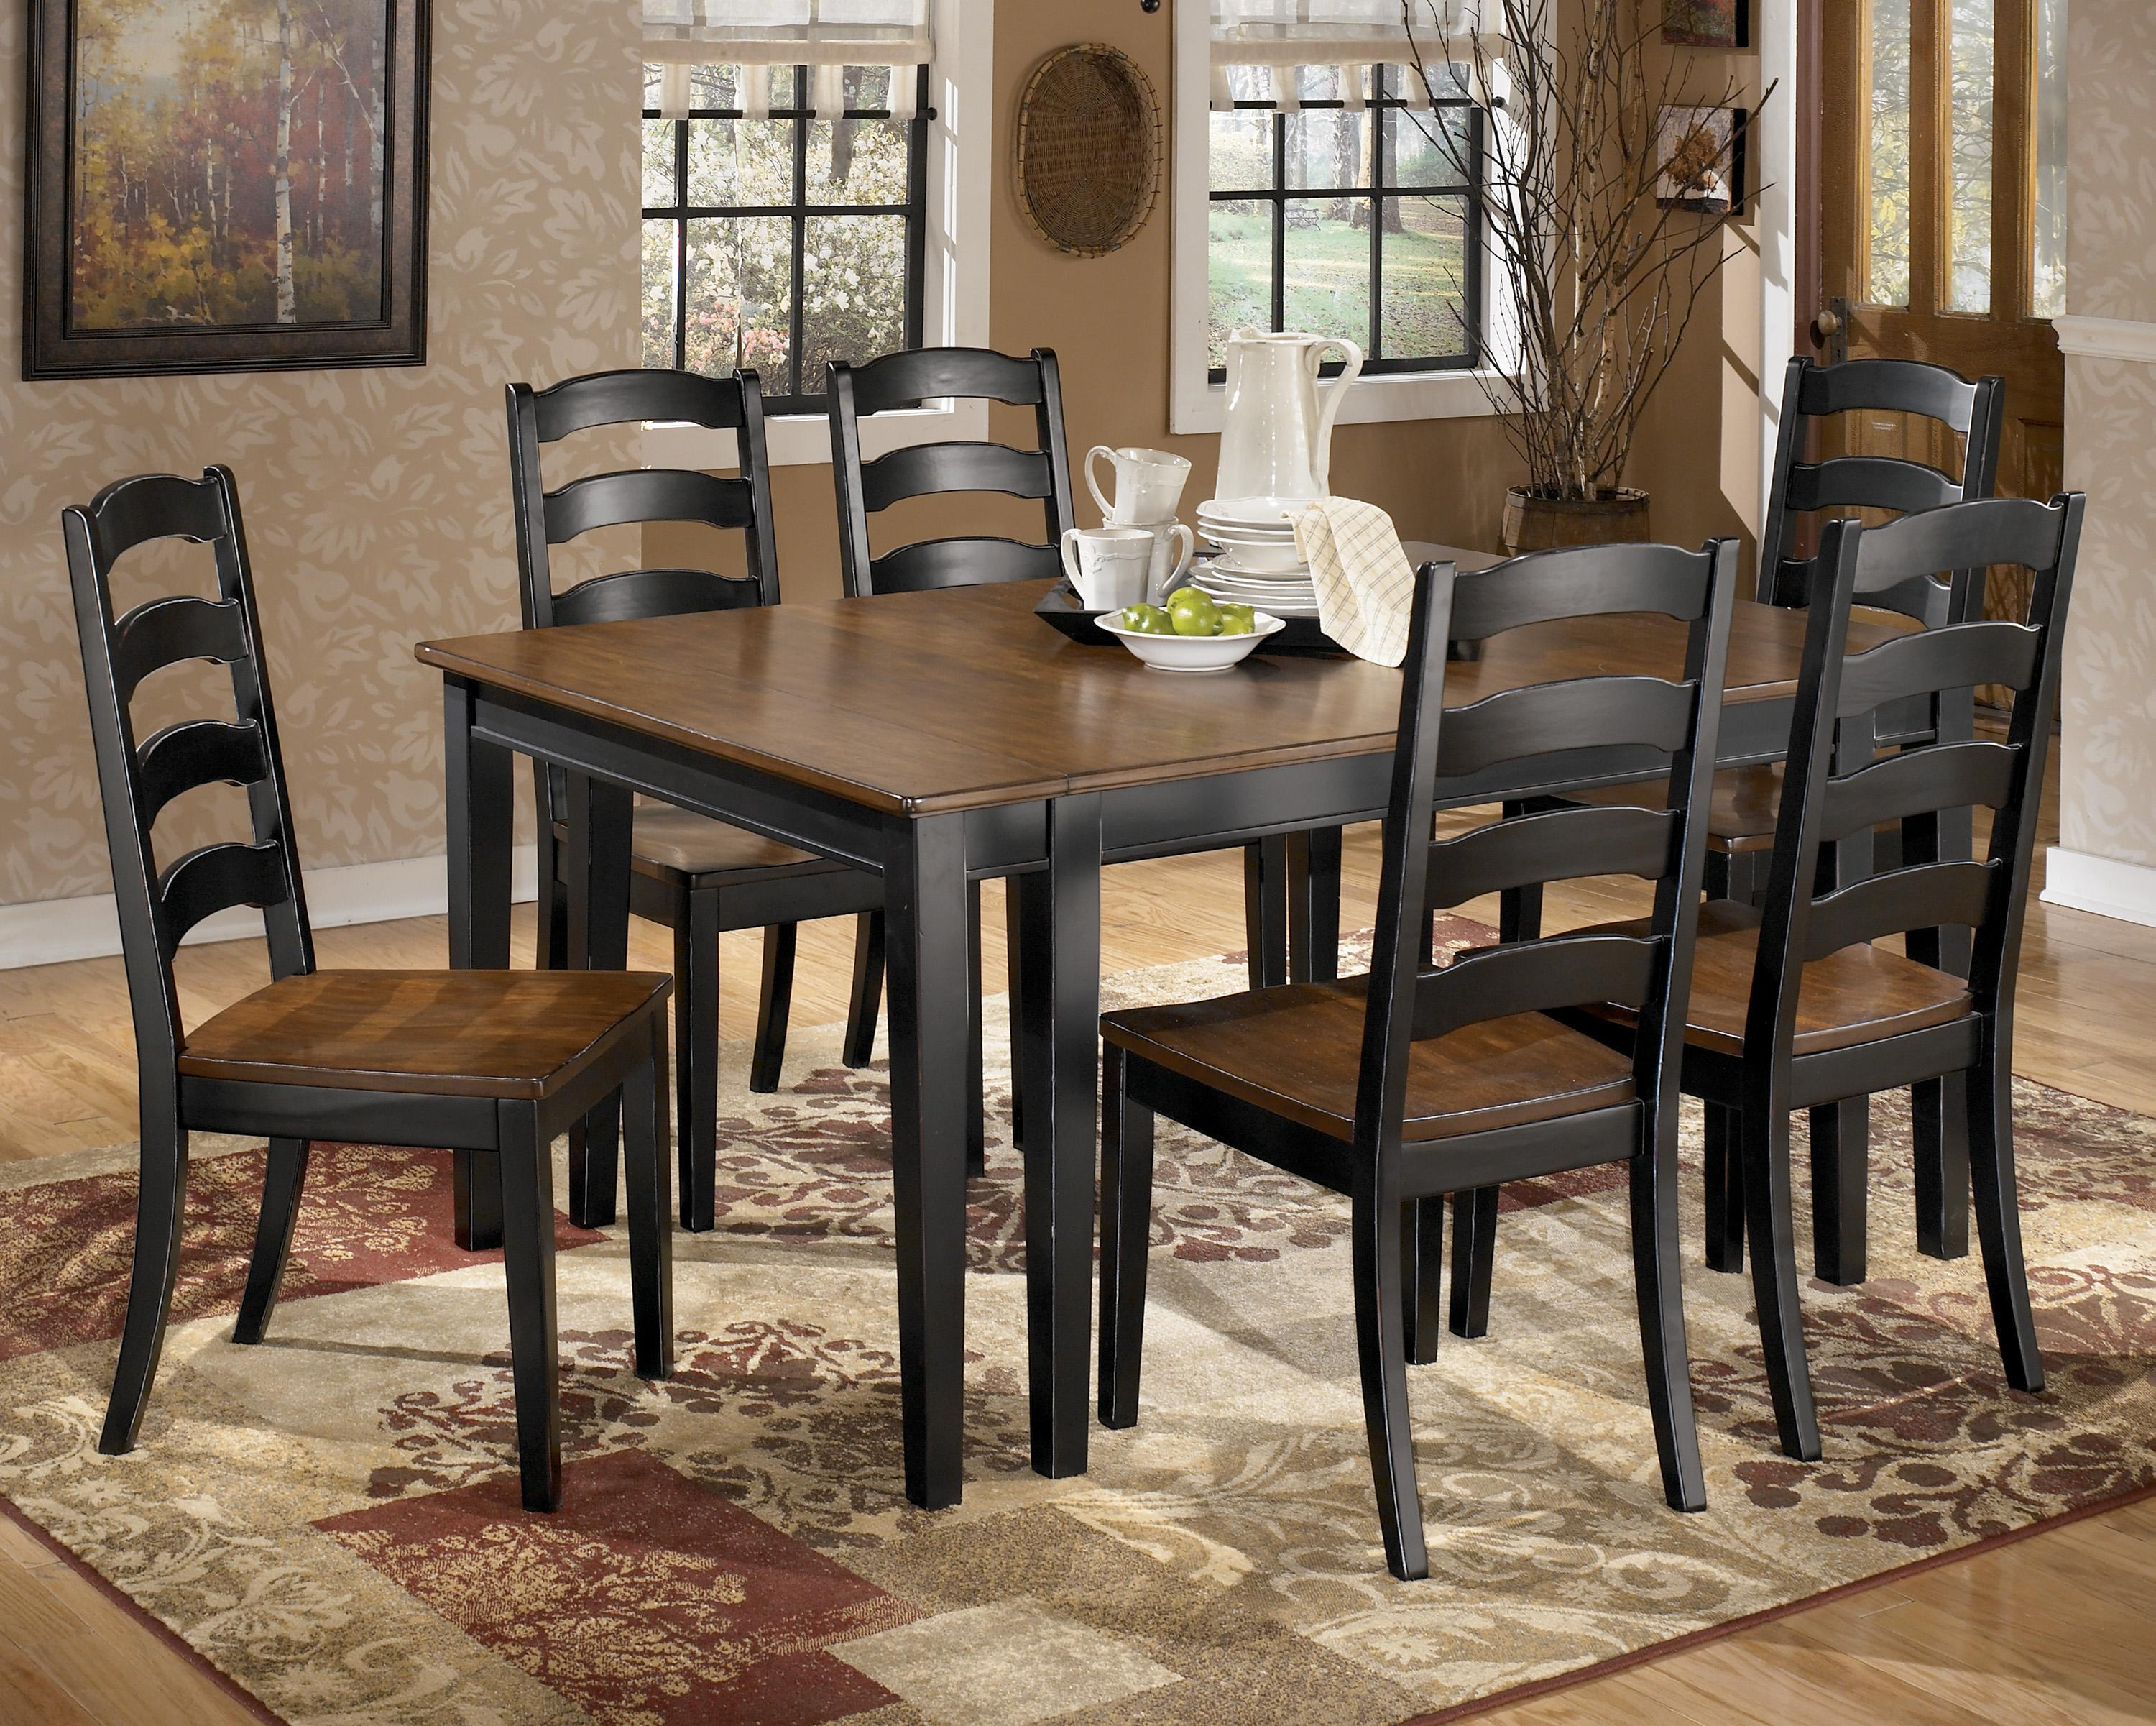 Dining room sets target homesfeed for Pictures of dining room sets